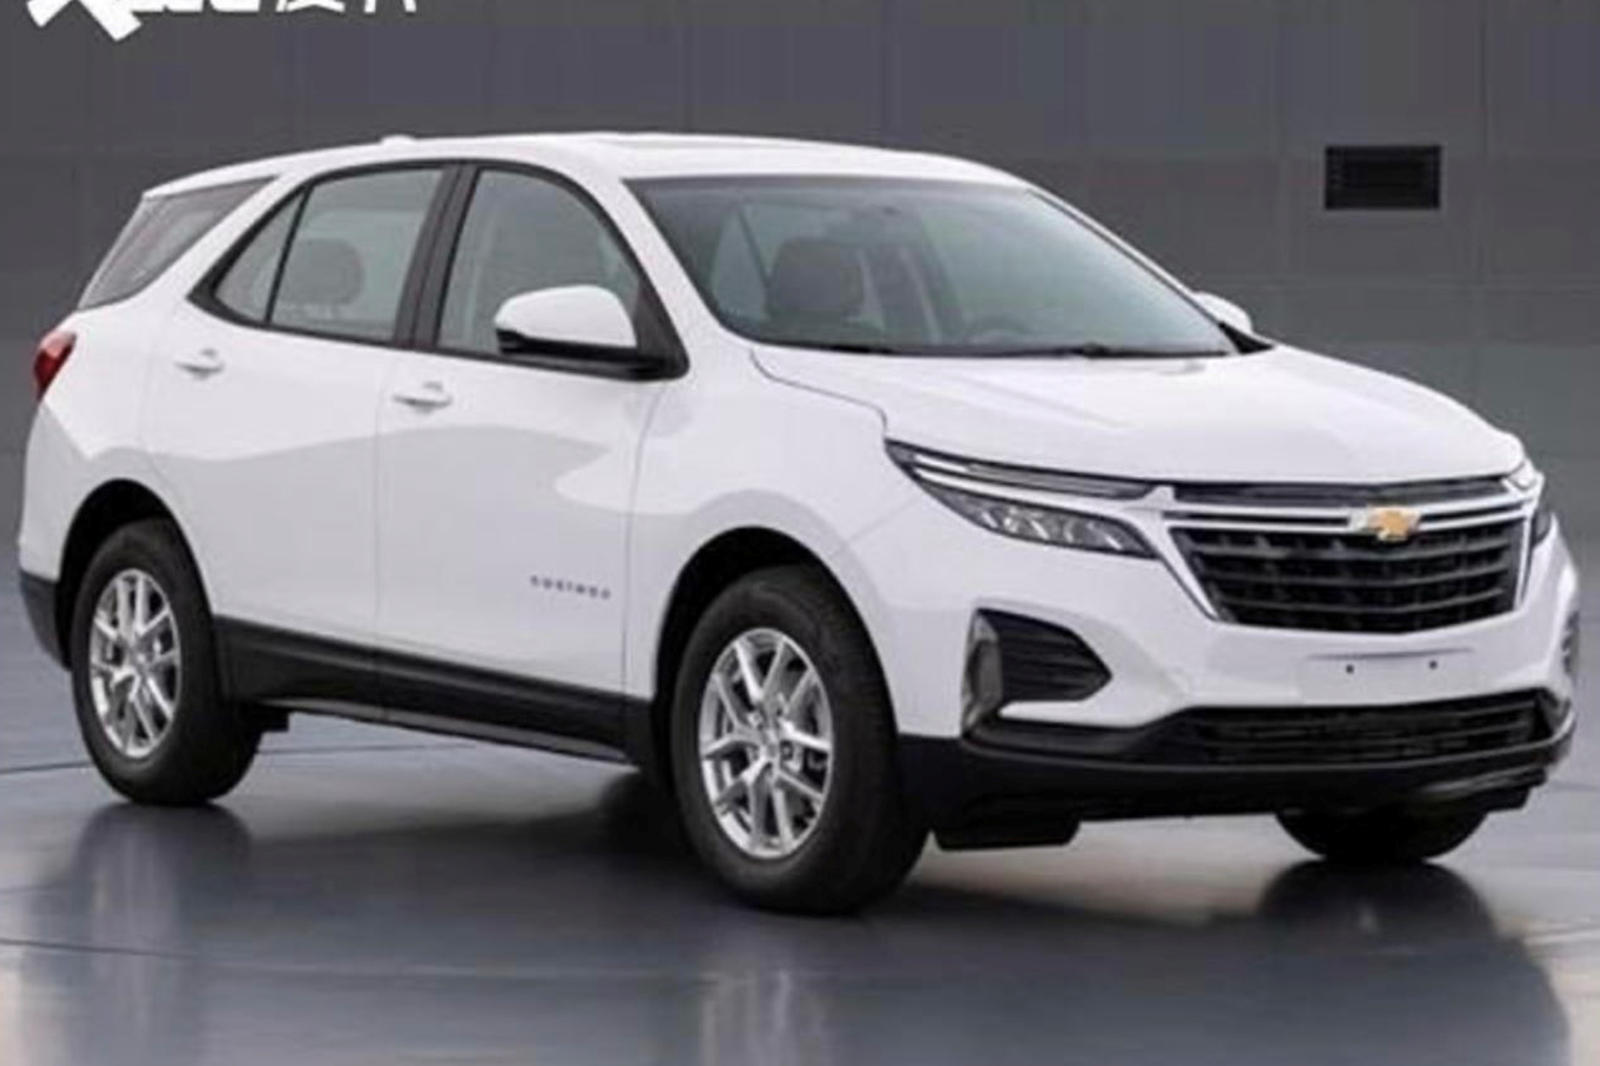 LEAKED: This Is The 2021 Chevrolet Equinox Facelift | CarBuzz